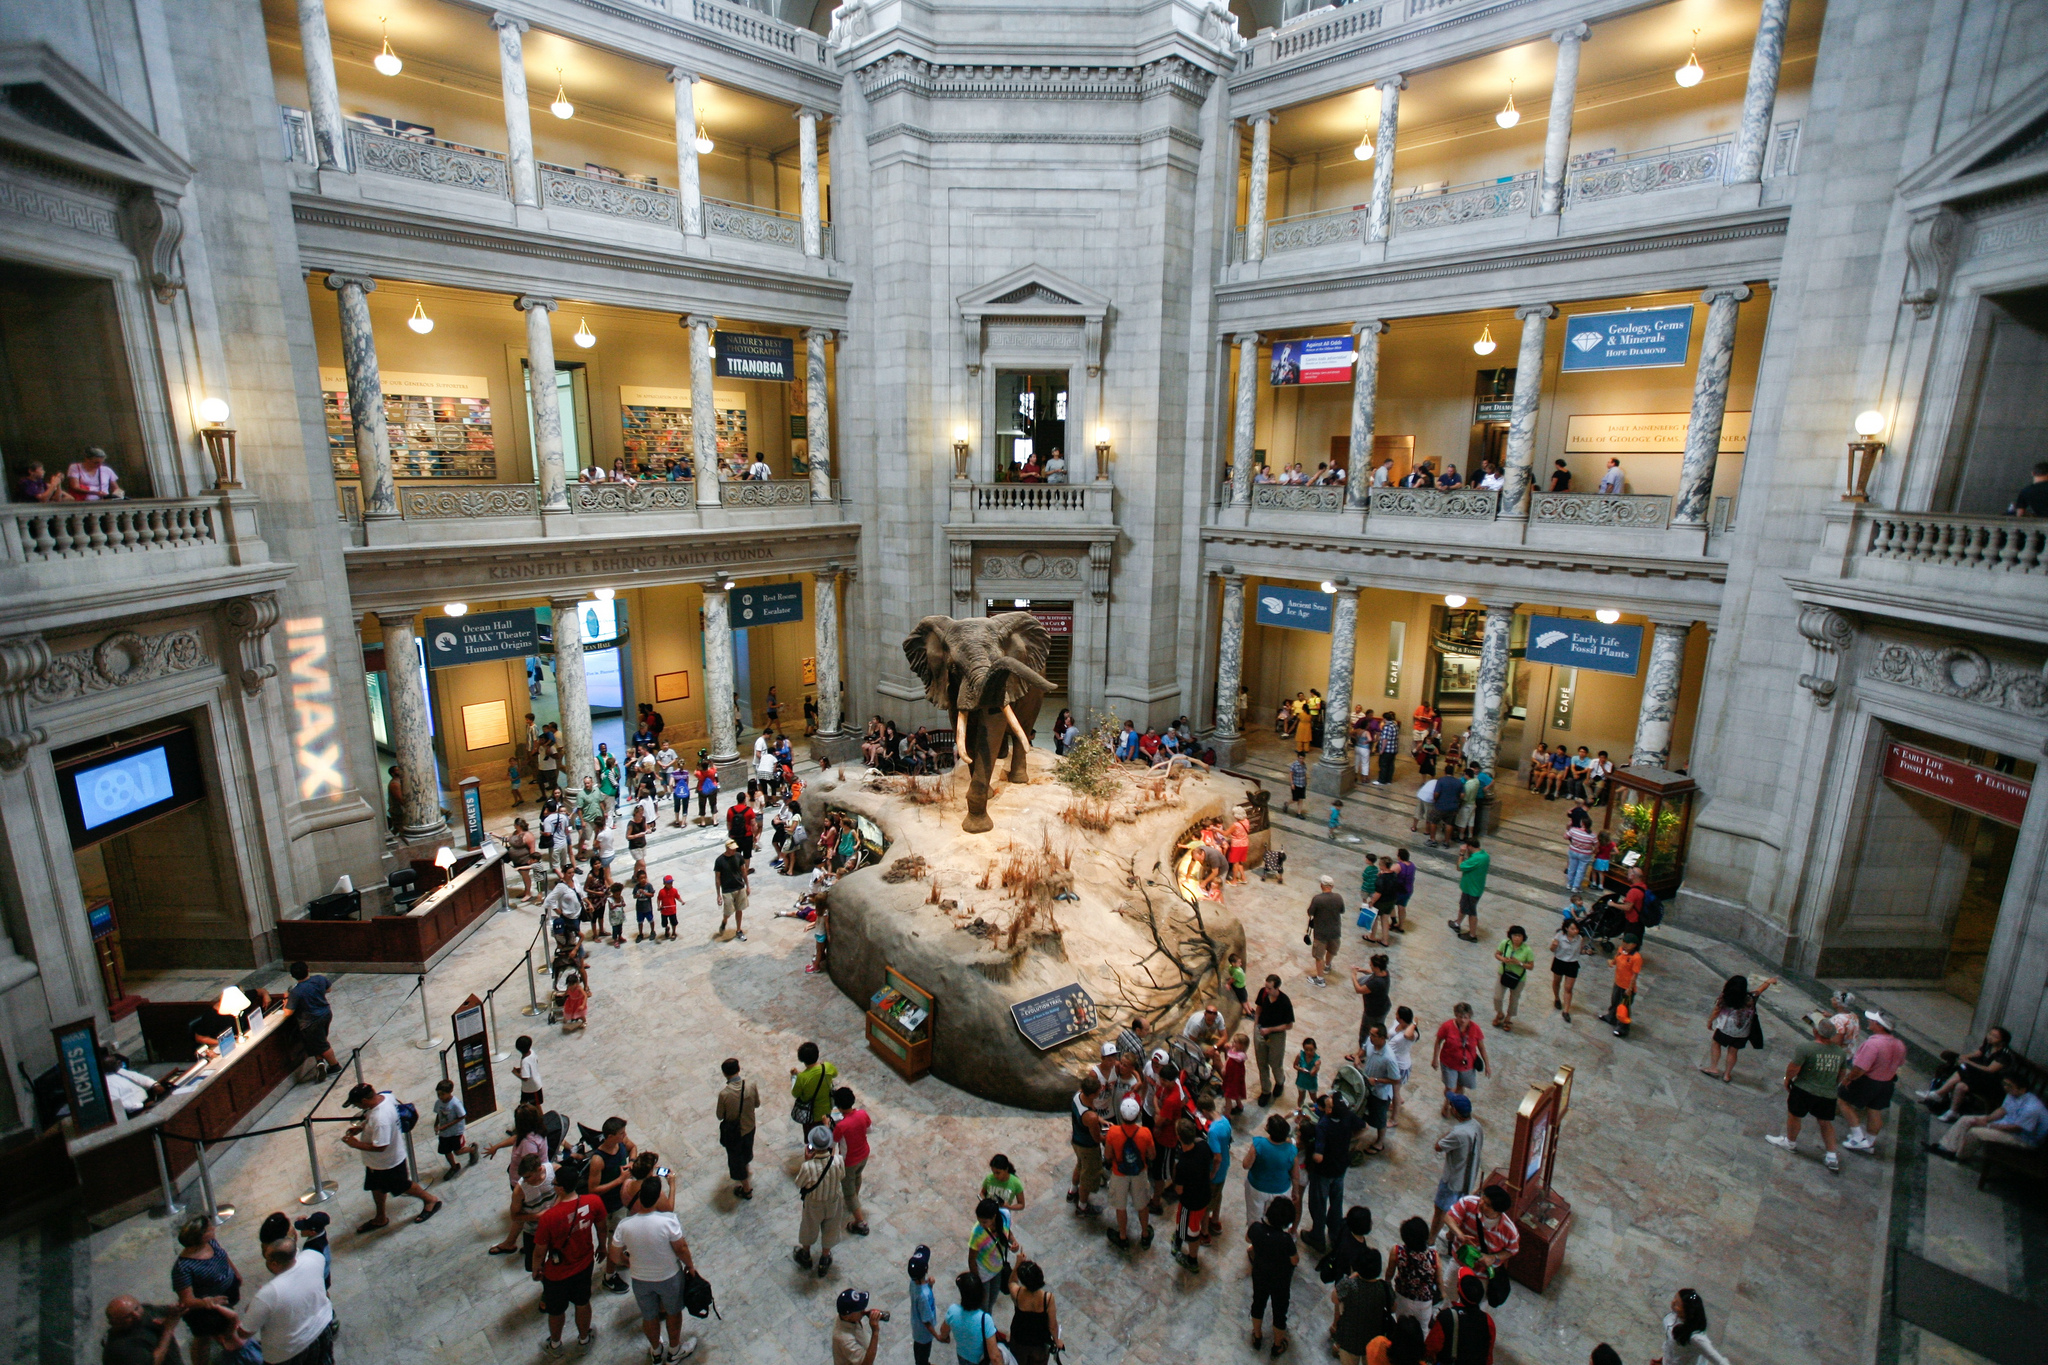 National museum of natural history museum in washington for Best museums in america